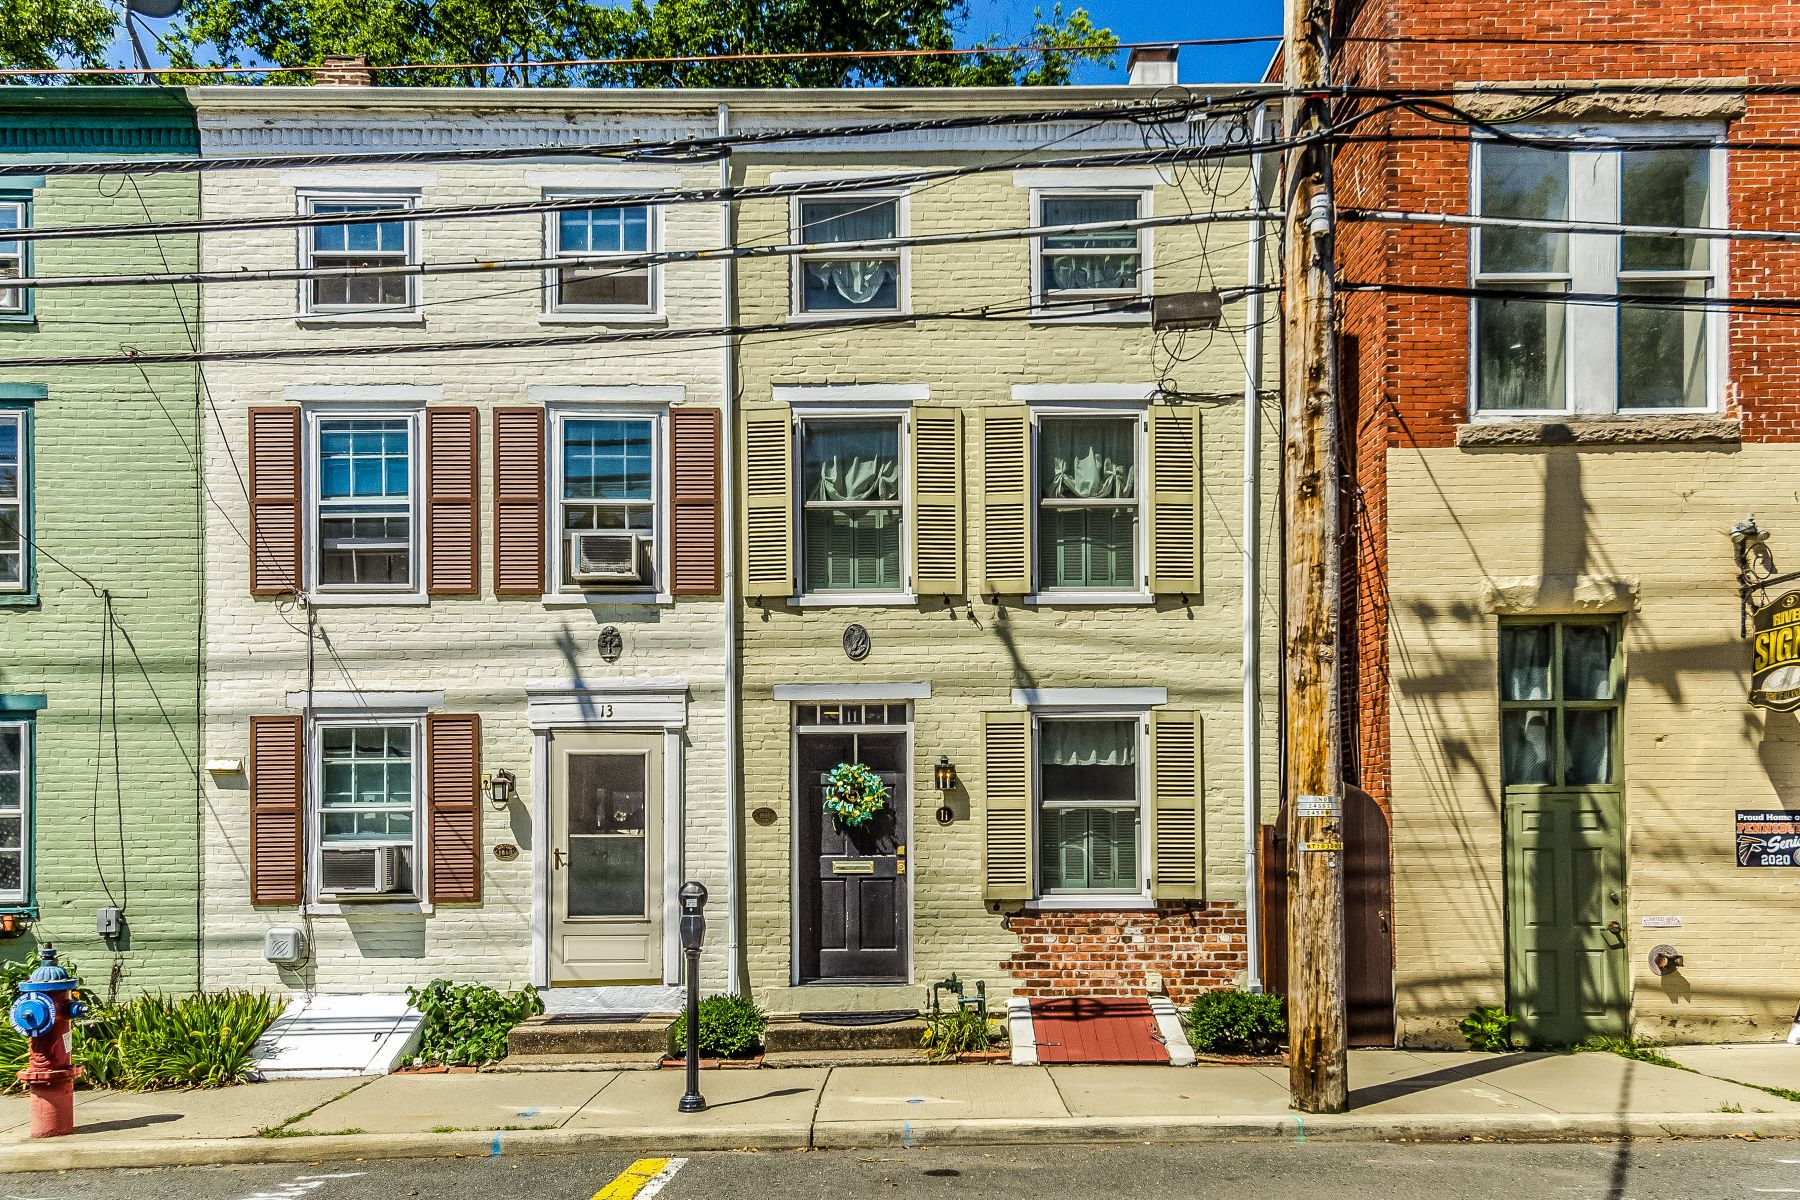 Single Family Homes for Sale at The Best Of Lambertville Living 11 South Main Street, Lambertville, New Jersey 08530 United States